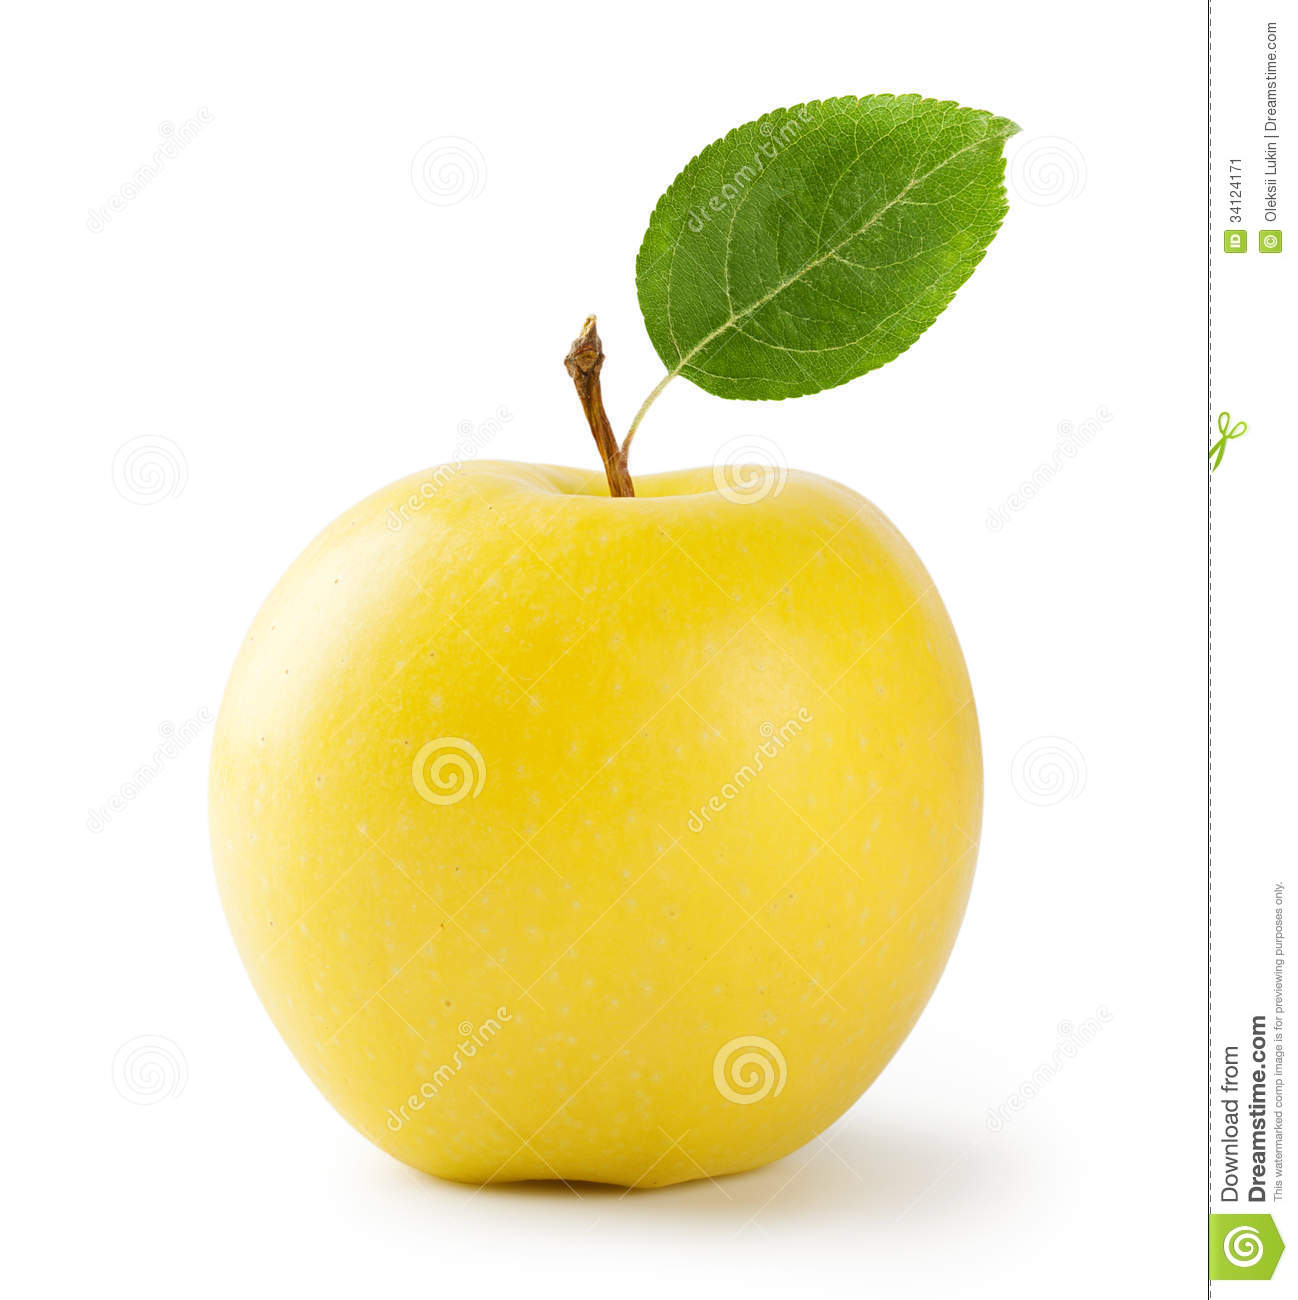 Design House Plan Ripe Yellow Apple With Leaf Stock Image Image 34124171